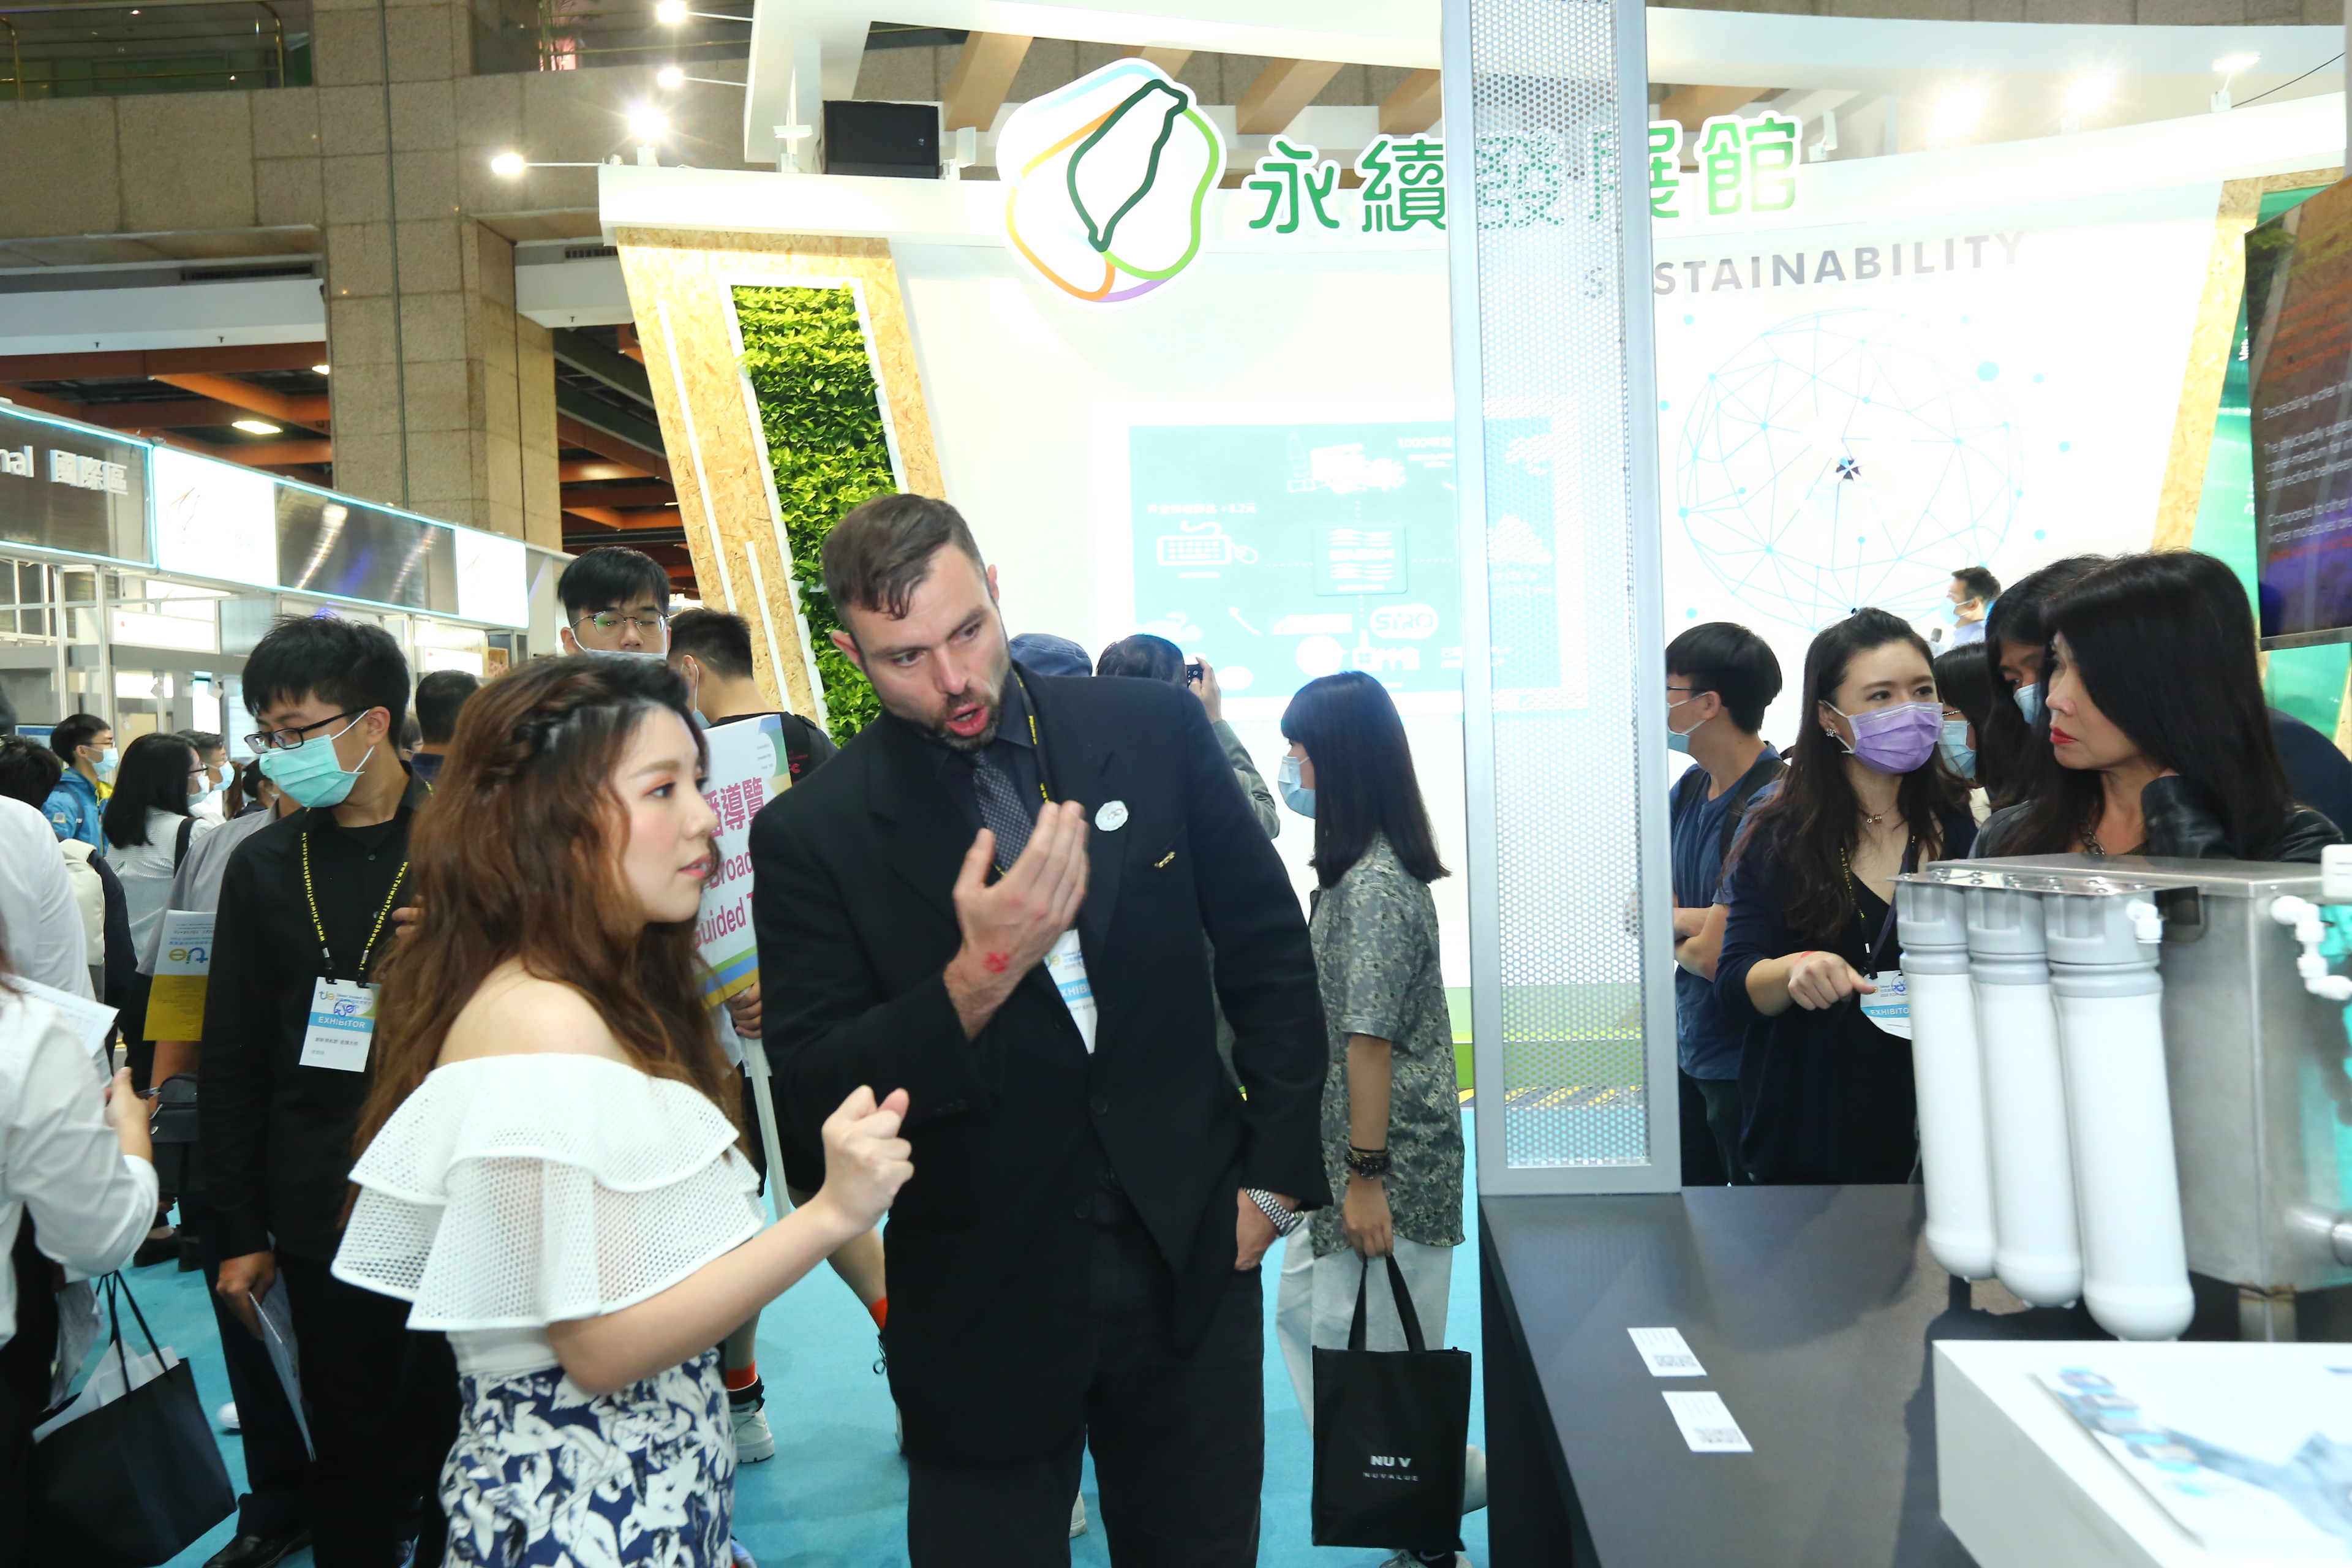 https://storage.googleapis.com/www.taiwantradeshow.com.tw/activity-photo/202009/T-76790511-name.jpg